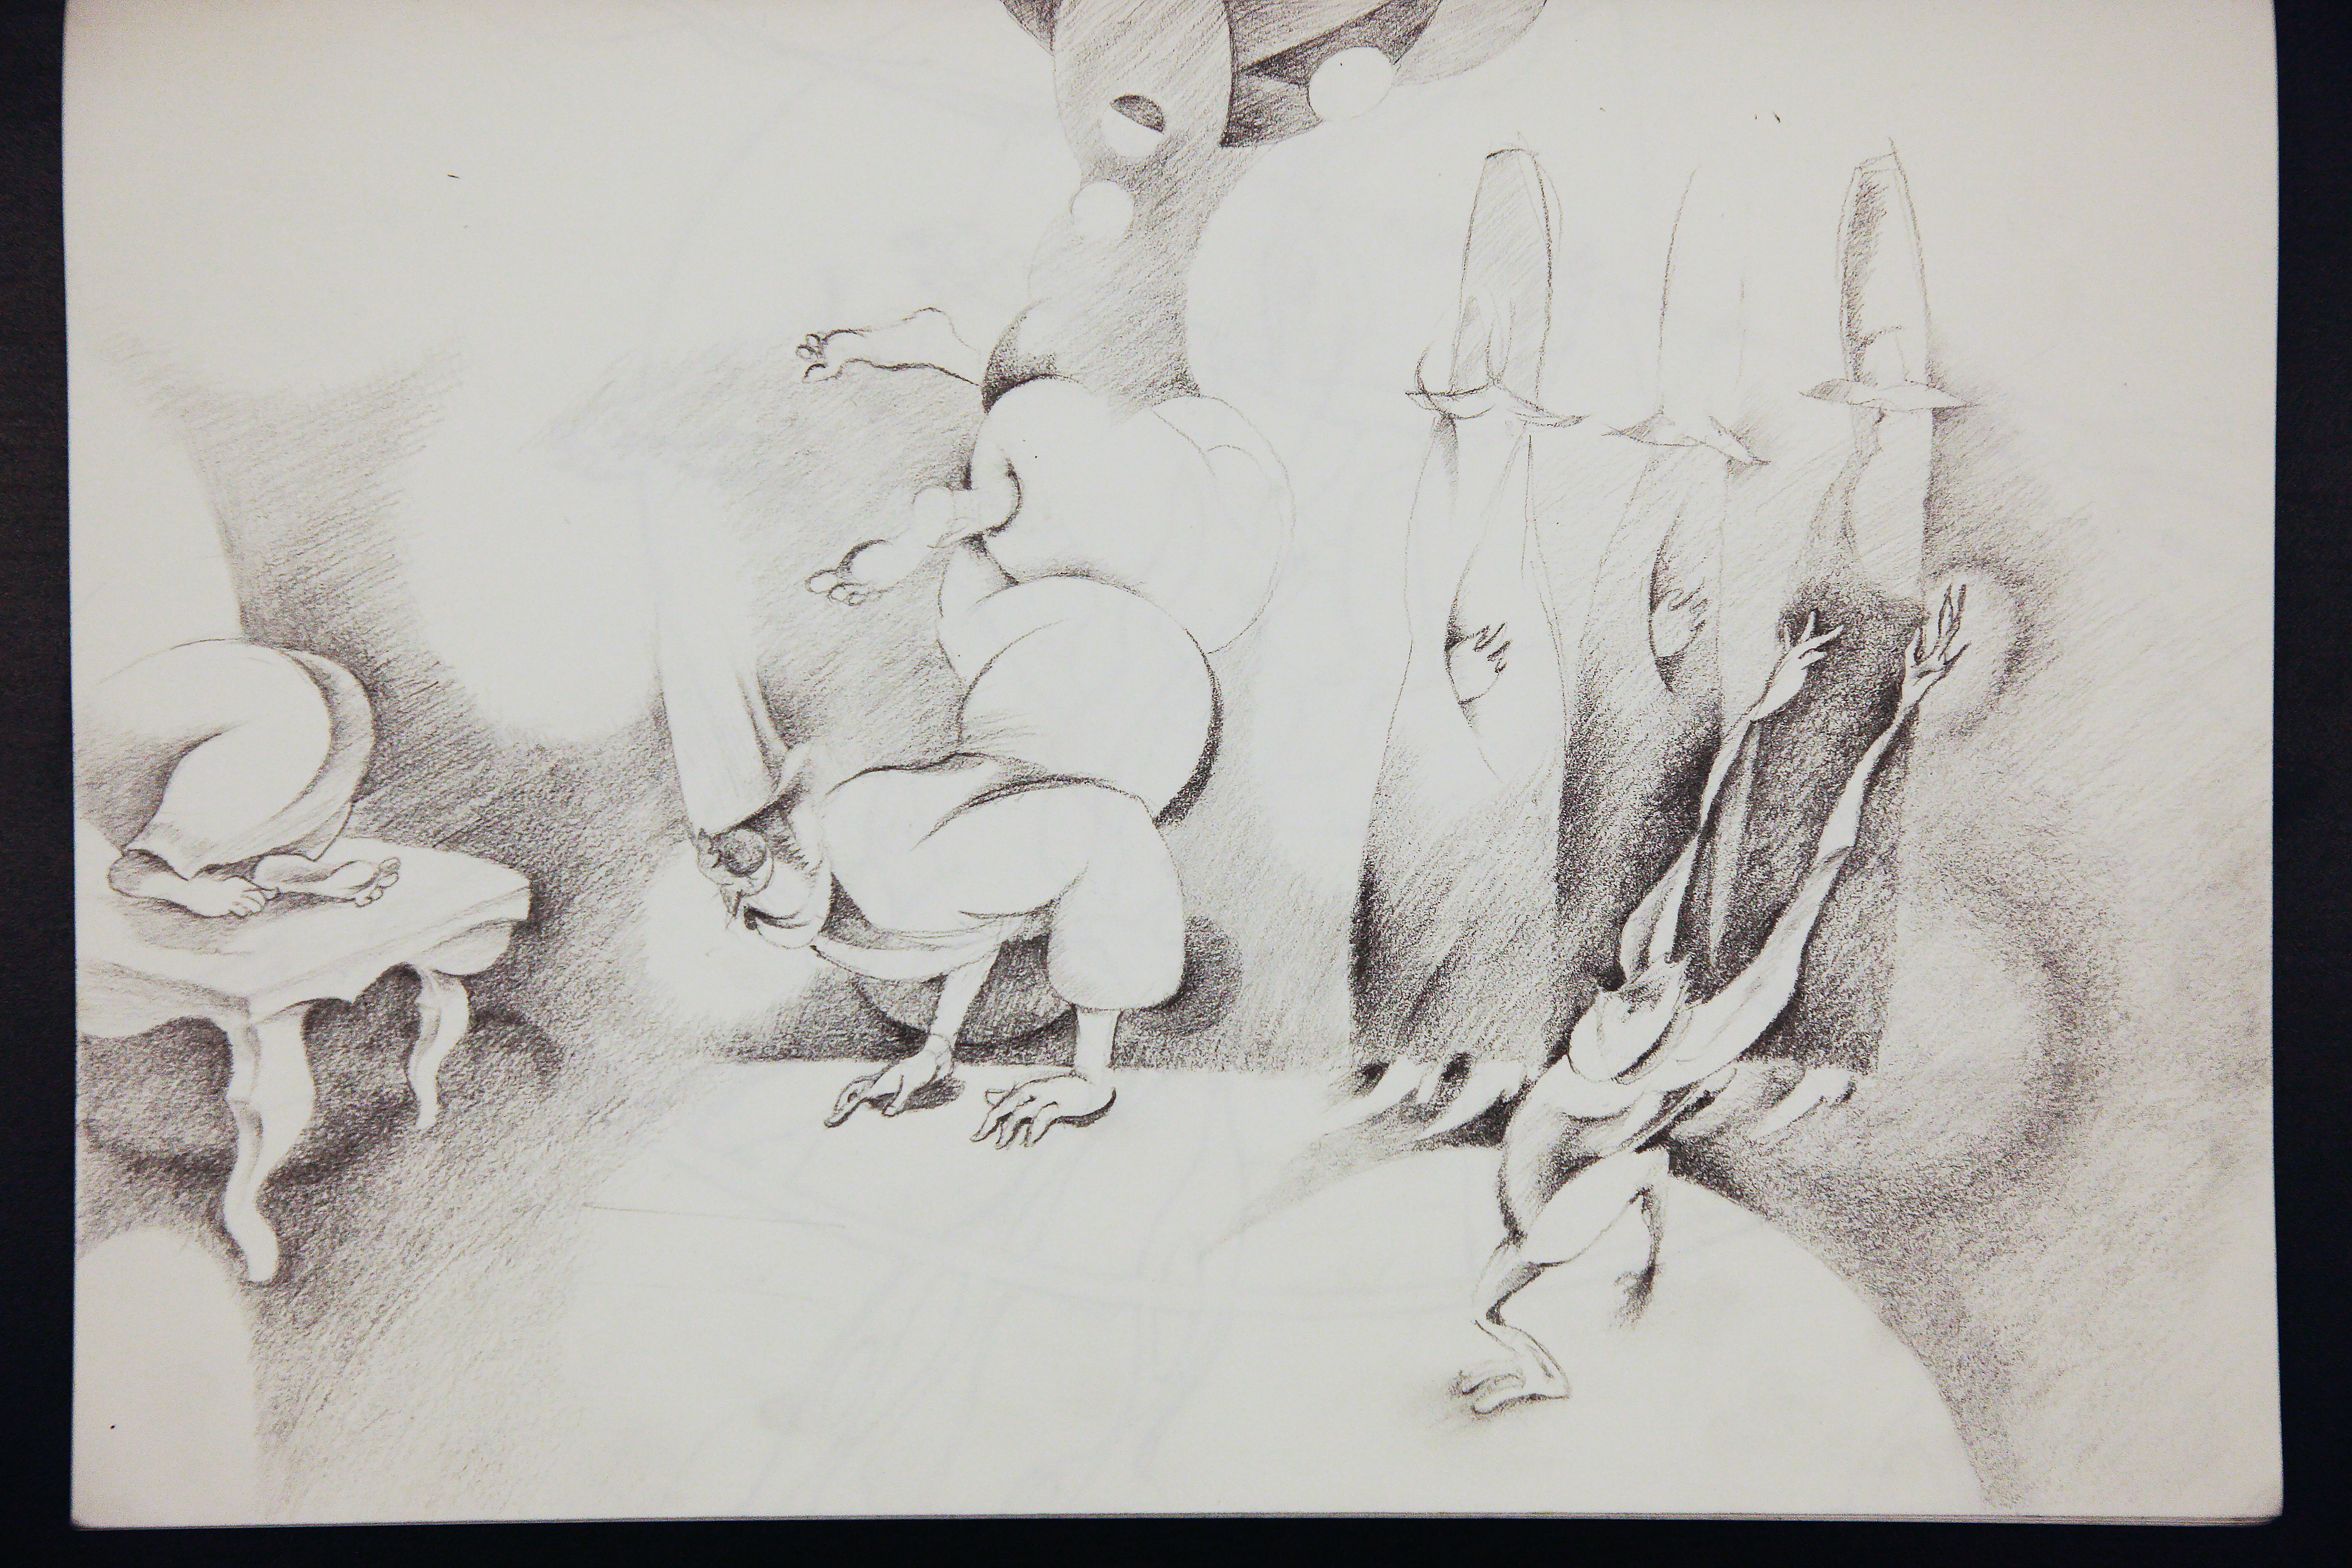 pencil on paper 2005